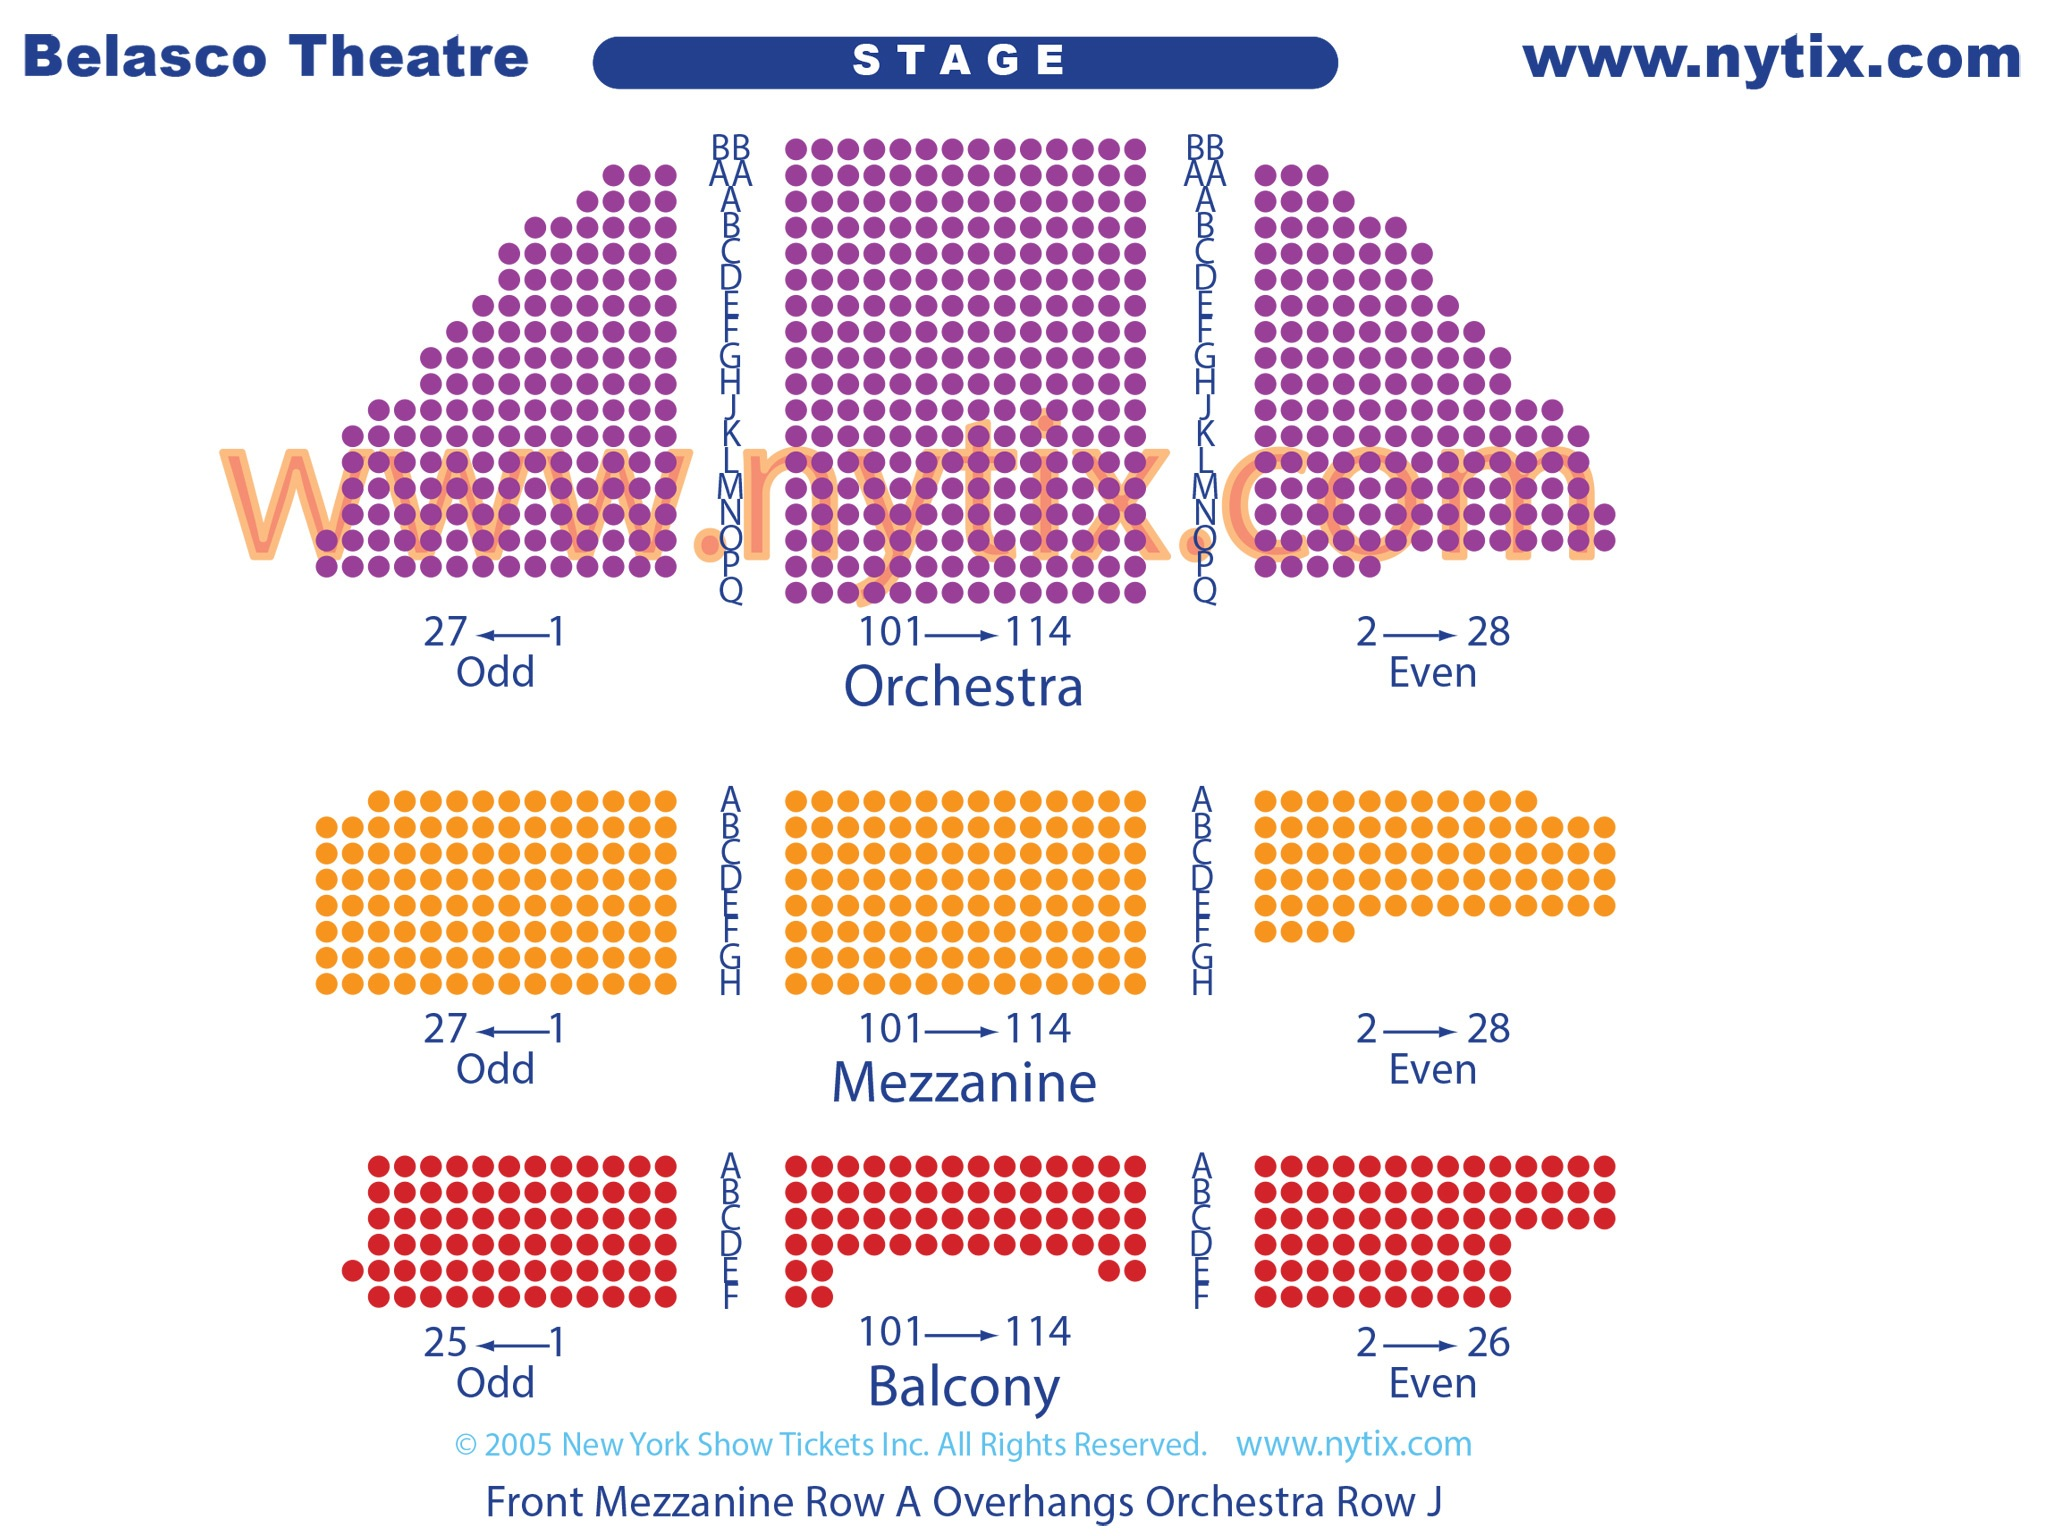 Belasco Theatre Seating Chart